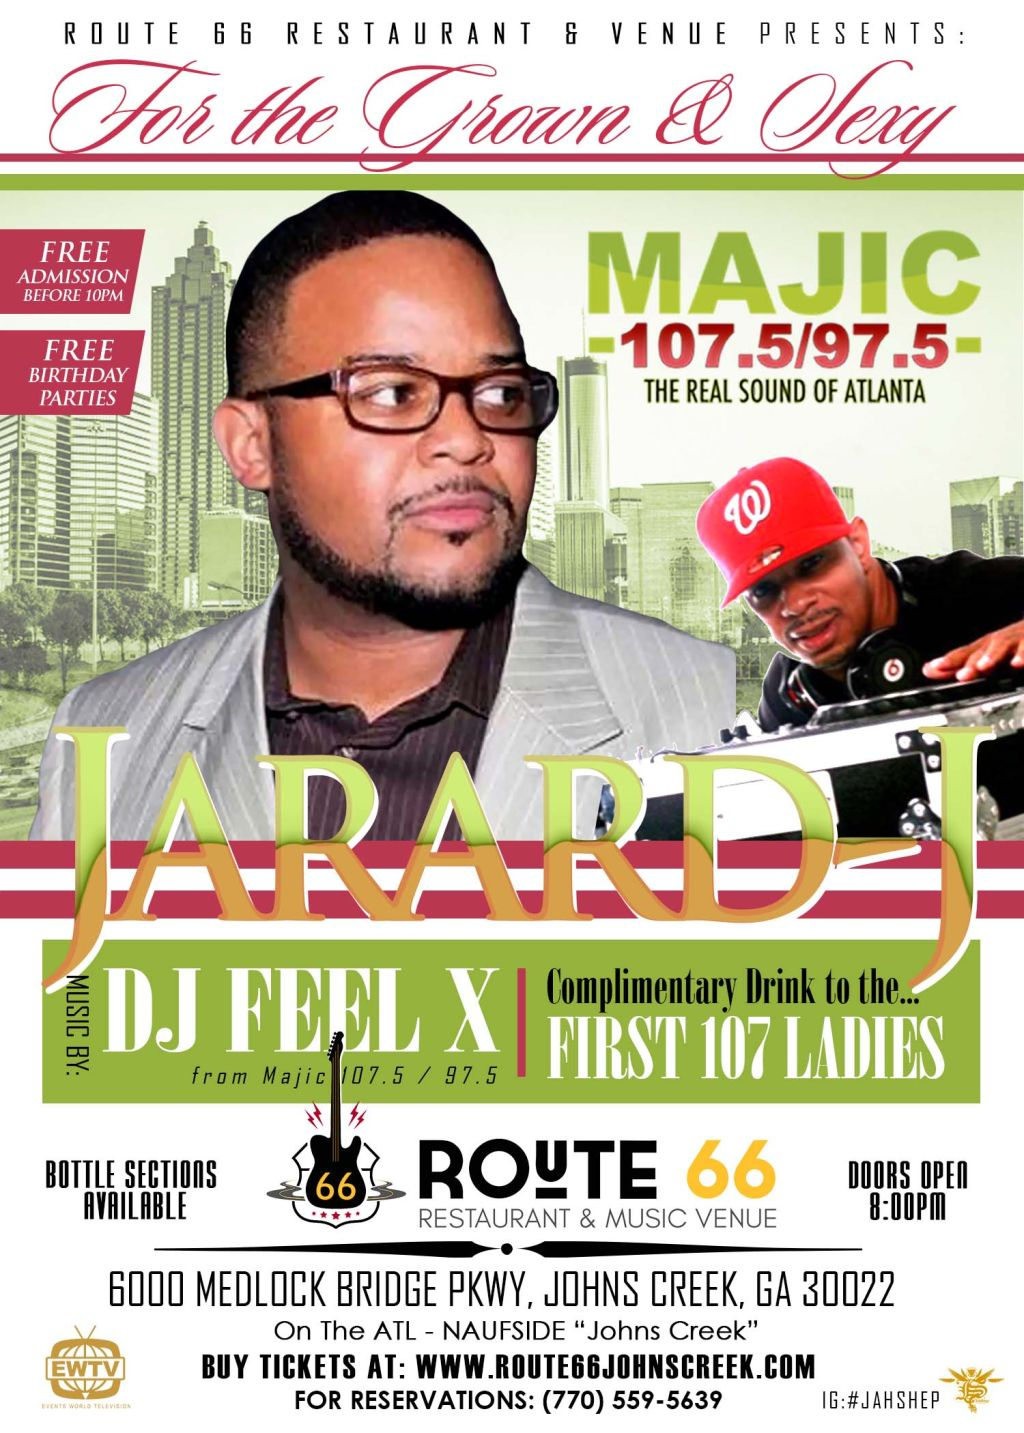 Route 66 & Venue Presents: For The Grown & Sexy With Jarard J